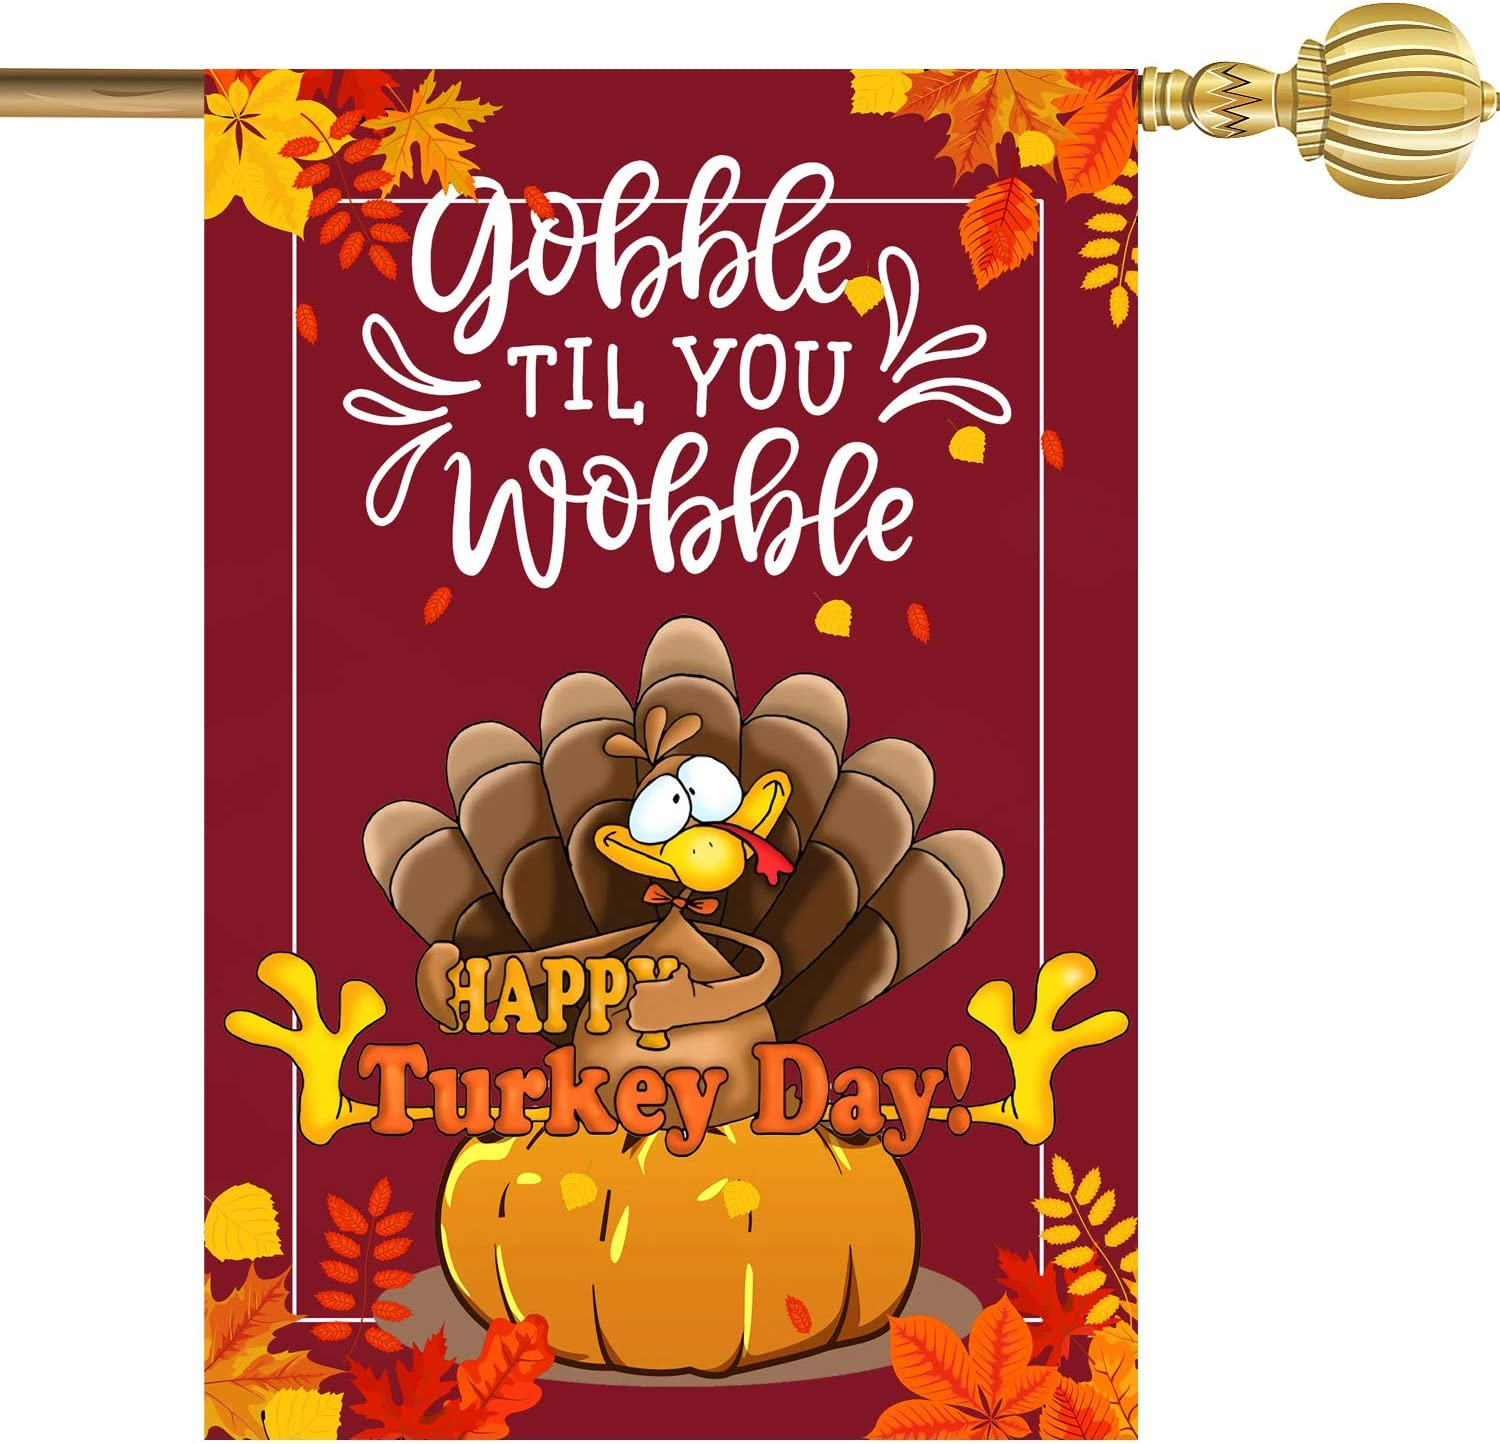 """Mocossmy Thanksgiving Garden Flags - 12.5"""" x 18"""" Happy Turkey Day Fall Harvest Garden Yard Flags Double Sided Turkey Pumpkin Maple Leaf Outdoor Yard Flags Decoration for November (1Pcs)"""